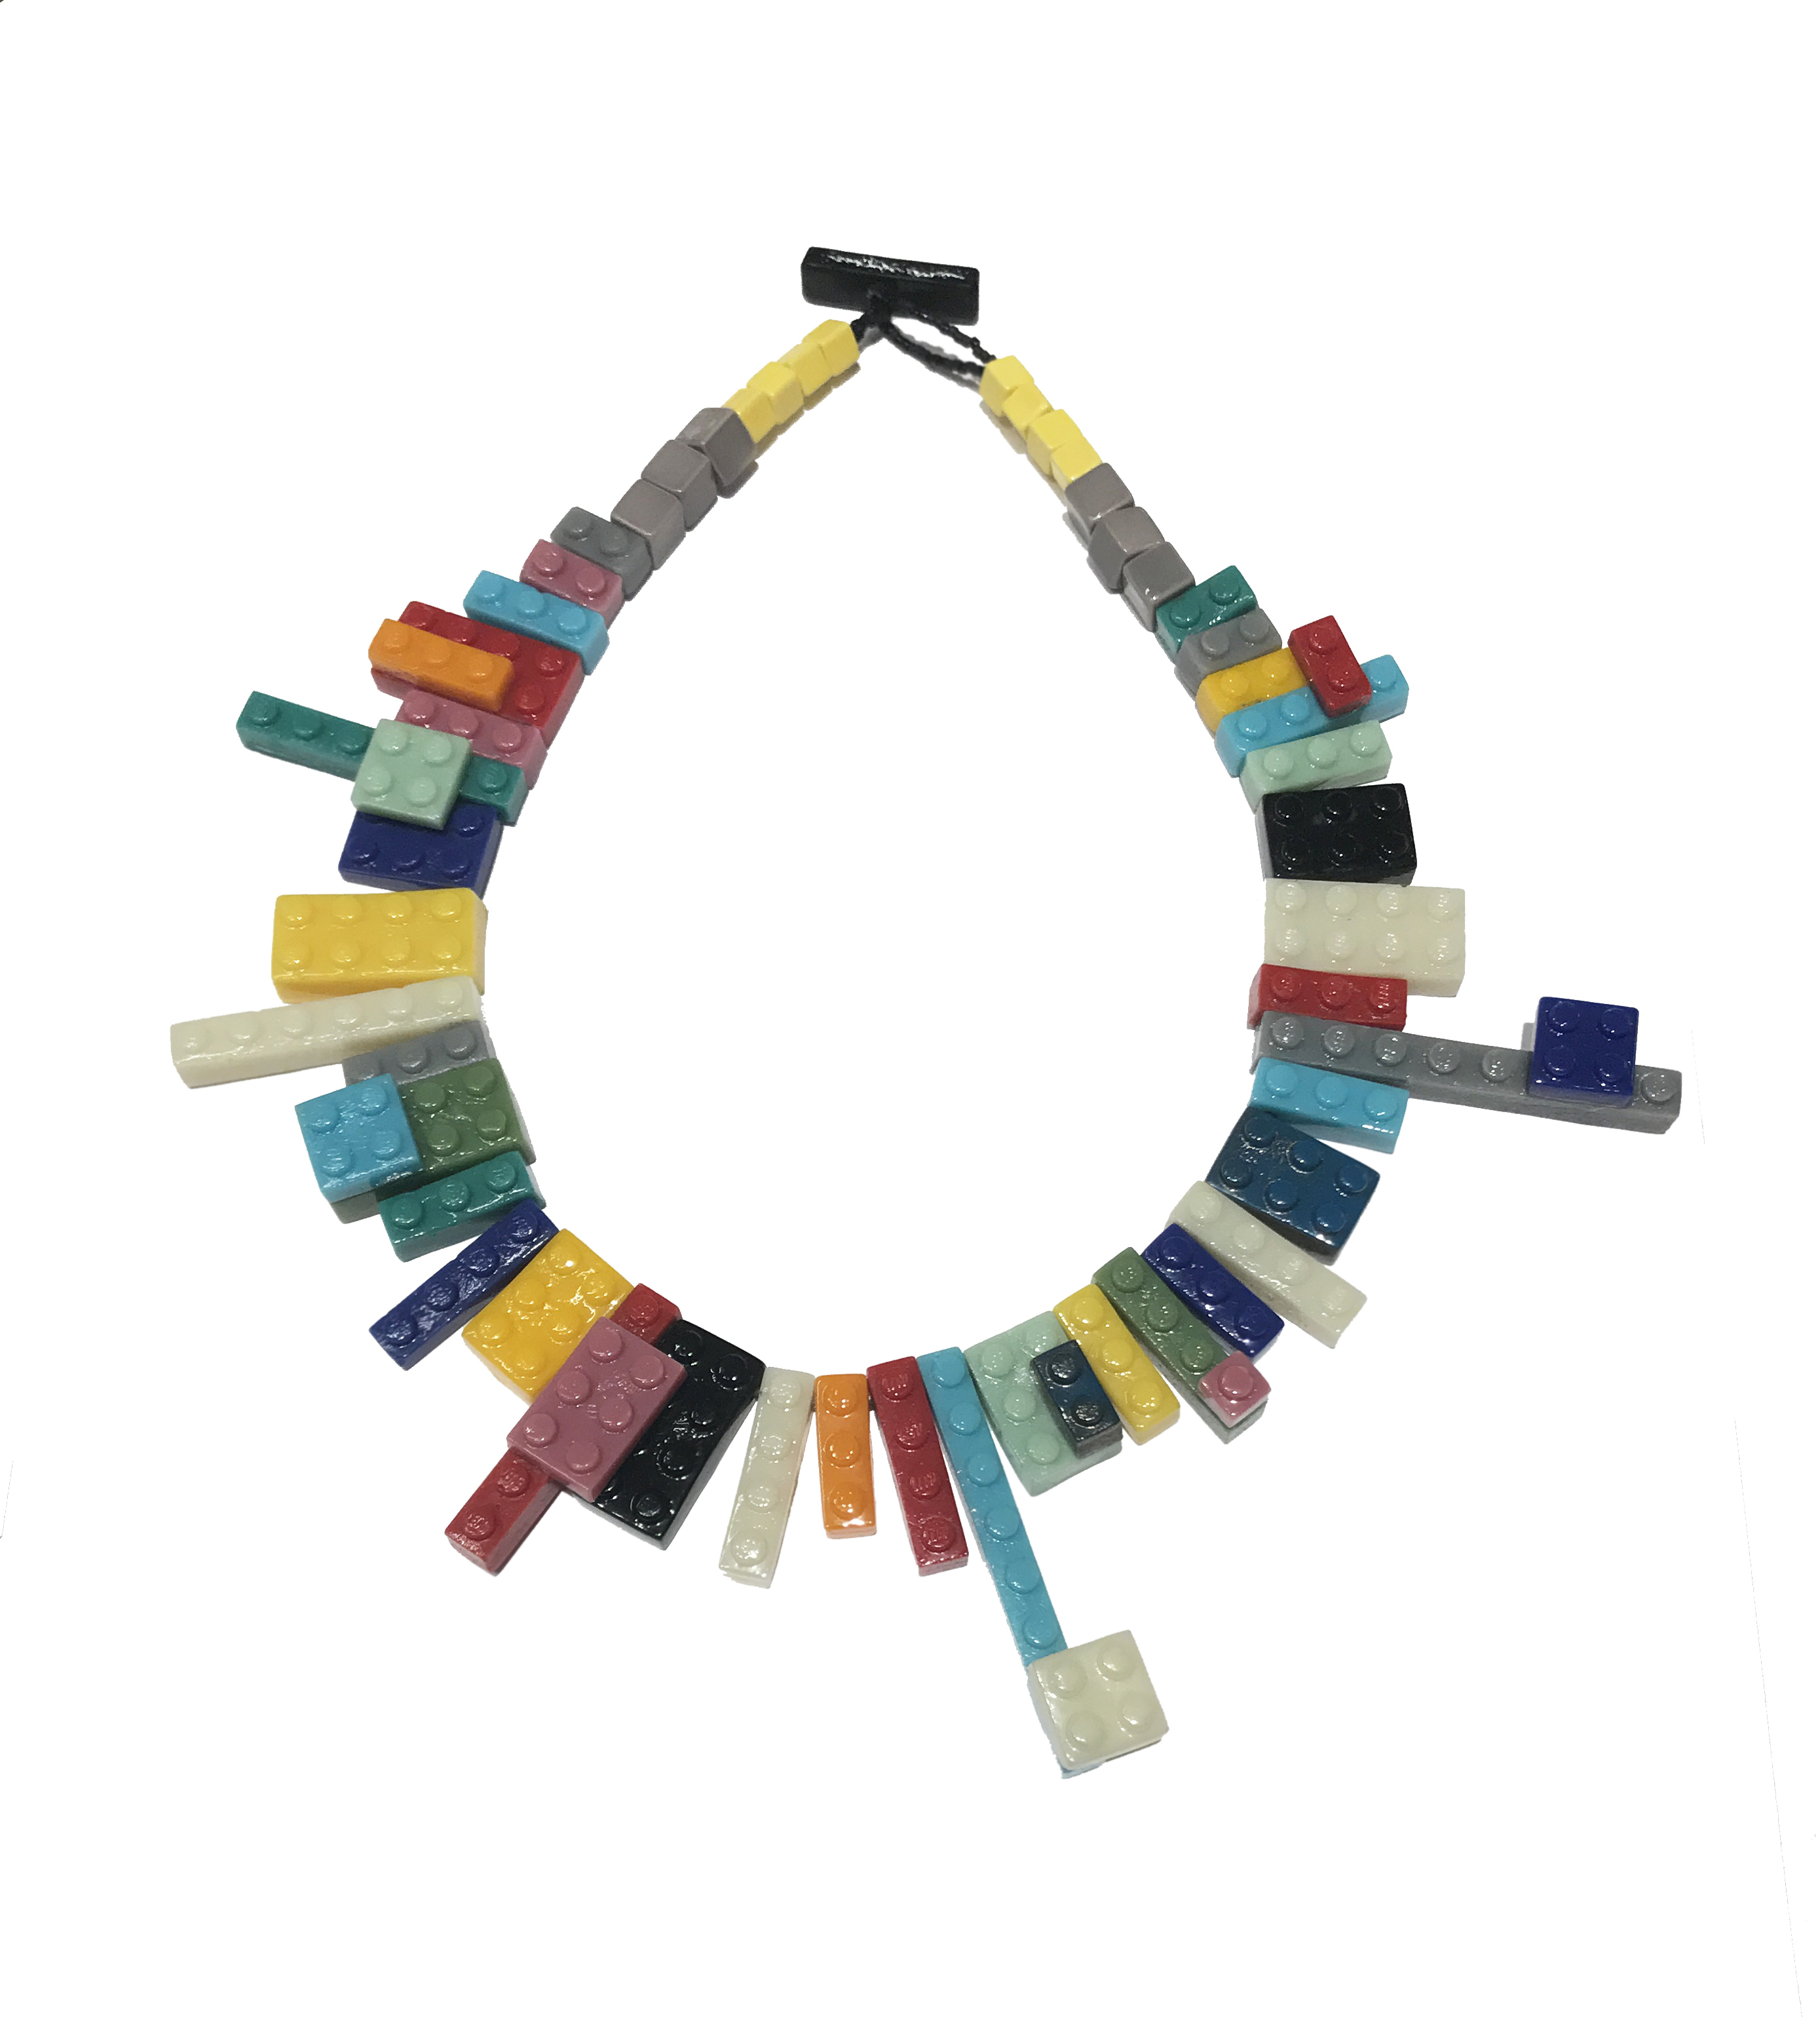 Building Block Jewelry collection by Dena Pengas